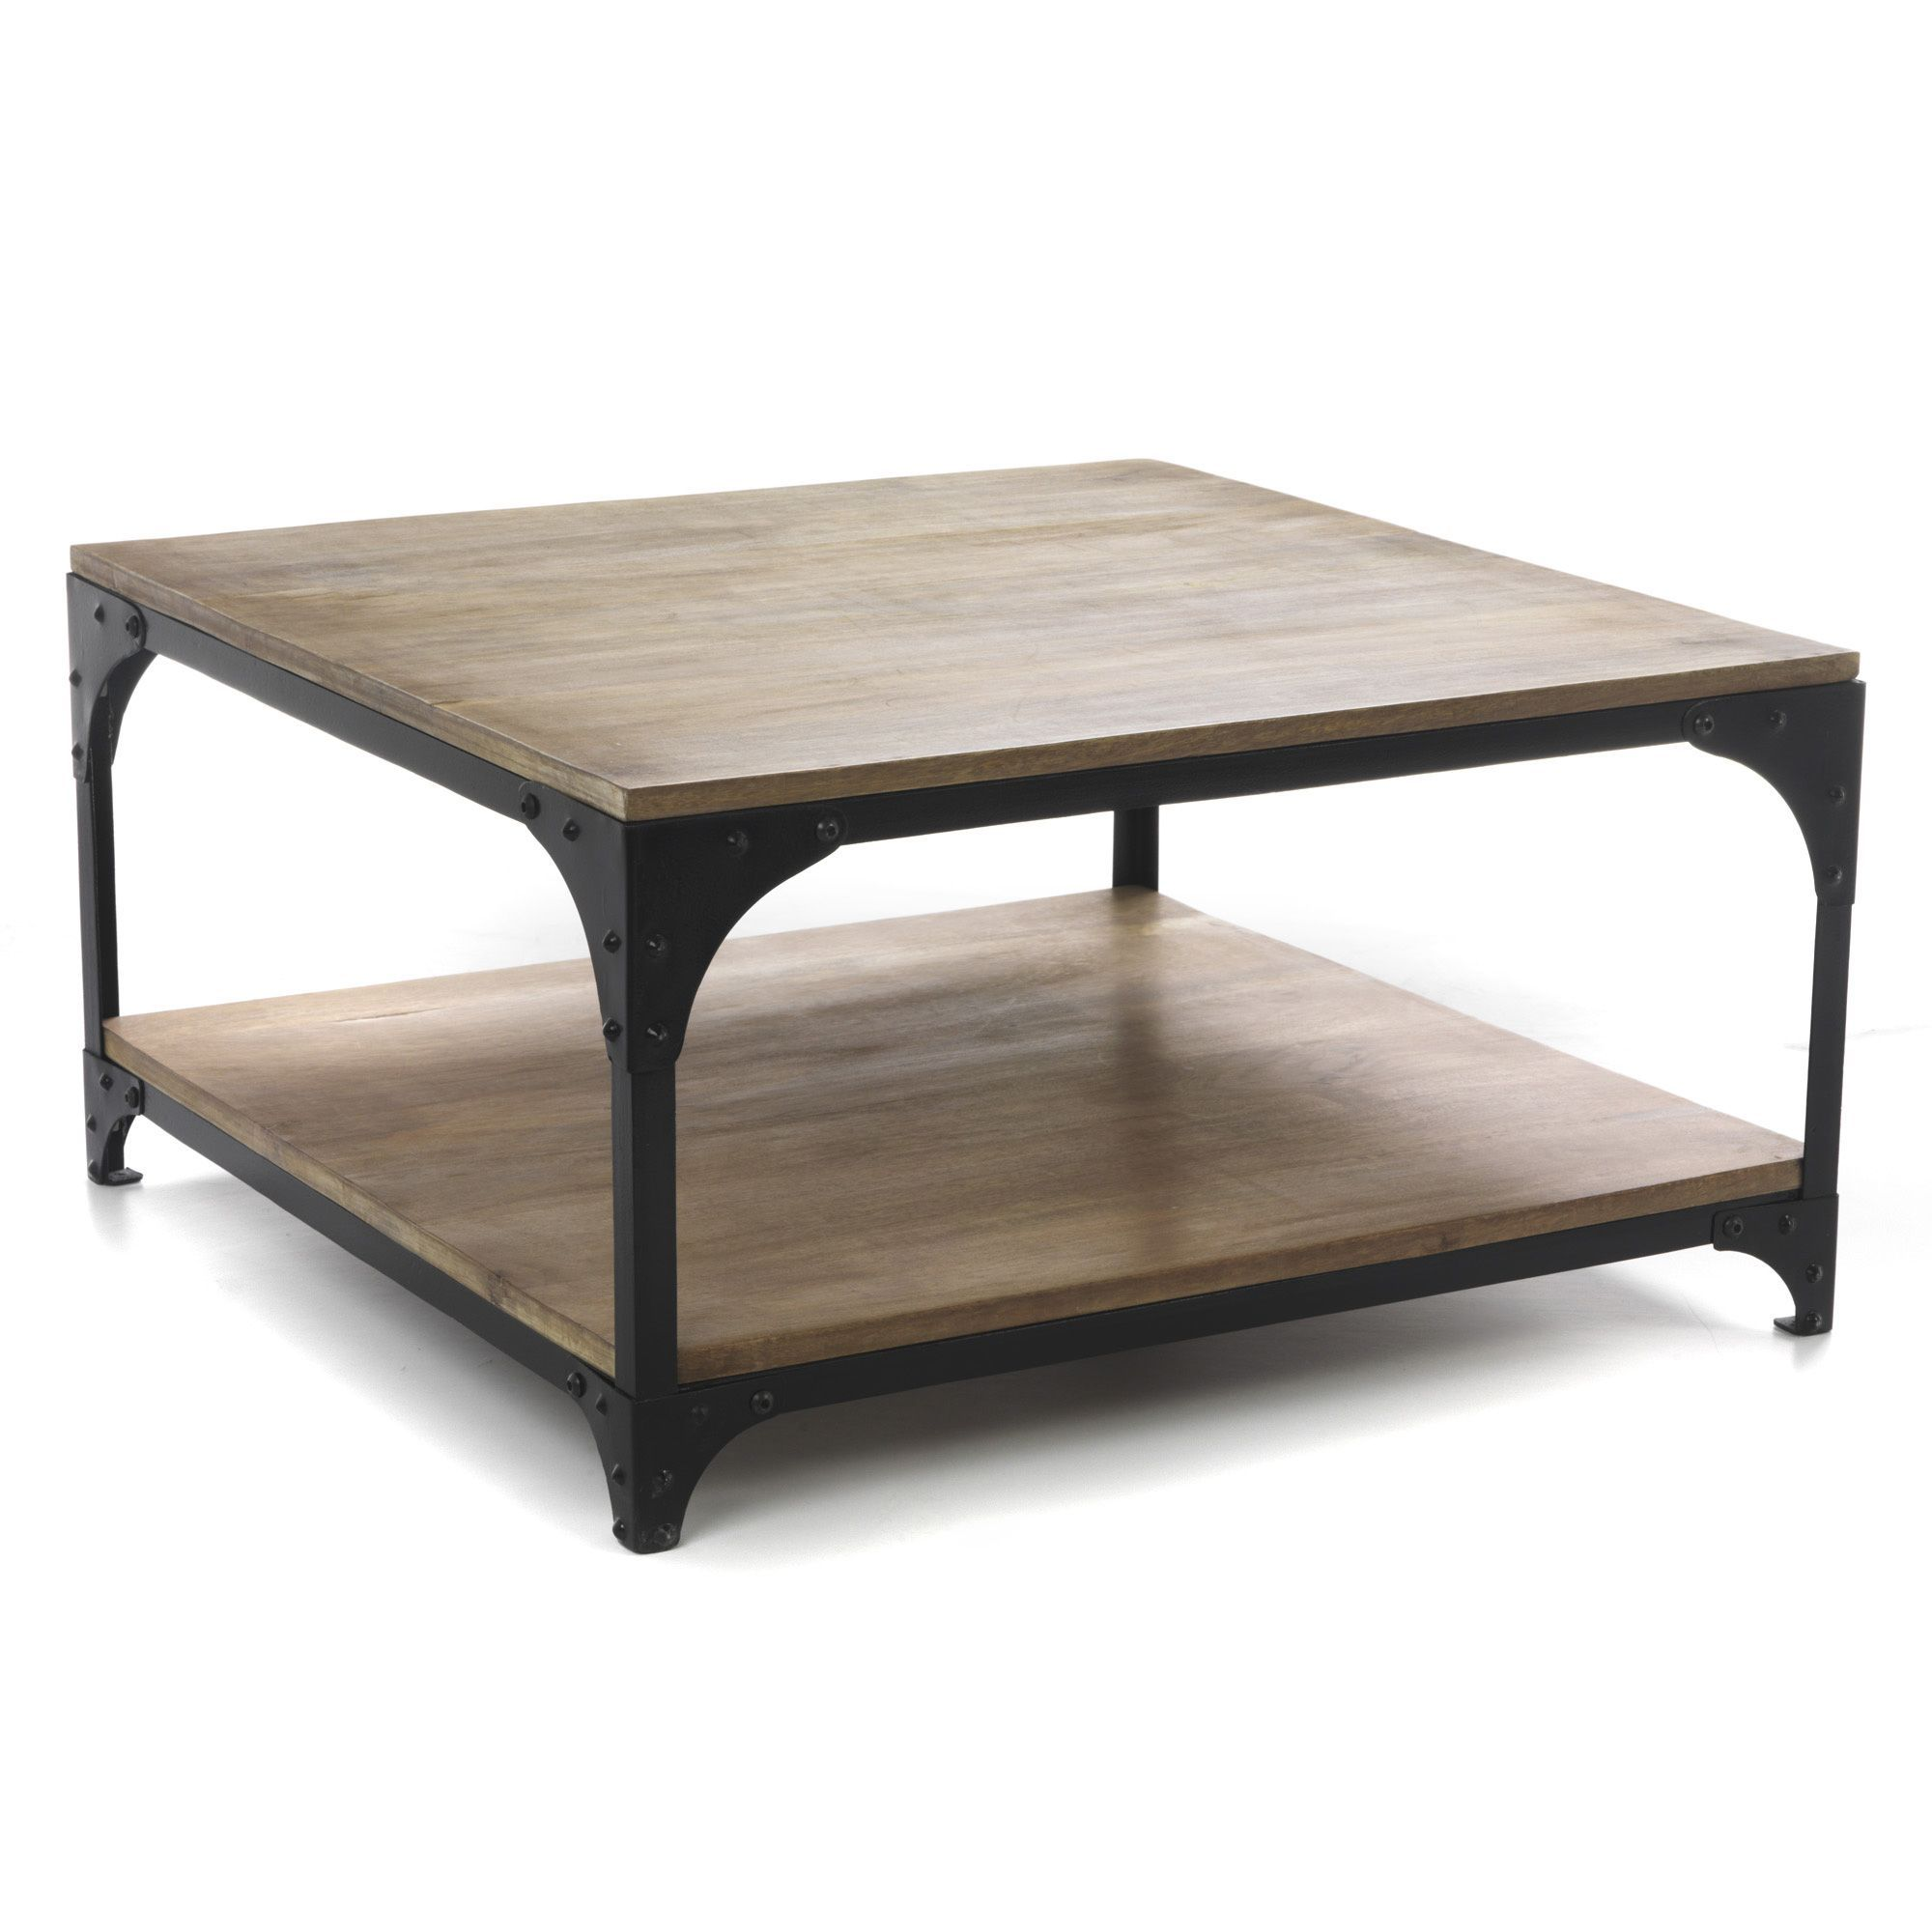 Table basse carr e industrielle naturel new ately les for Table a manger carree